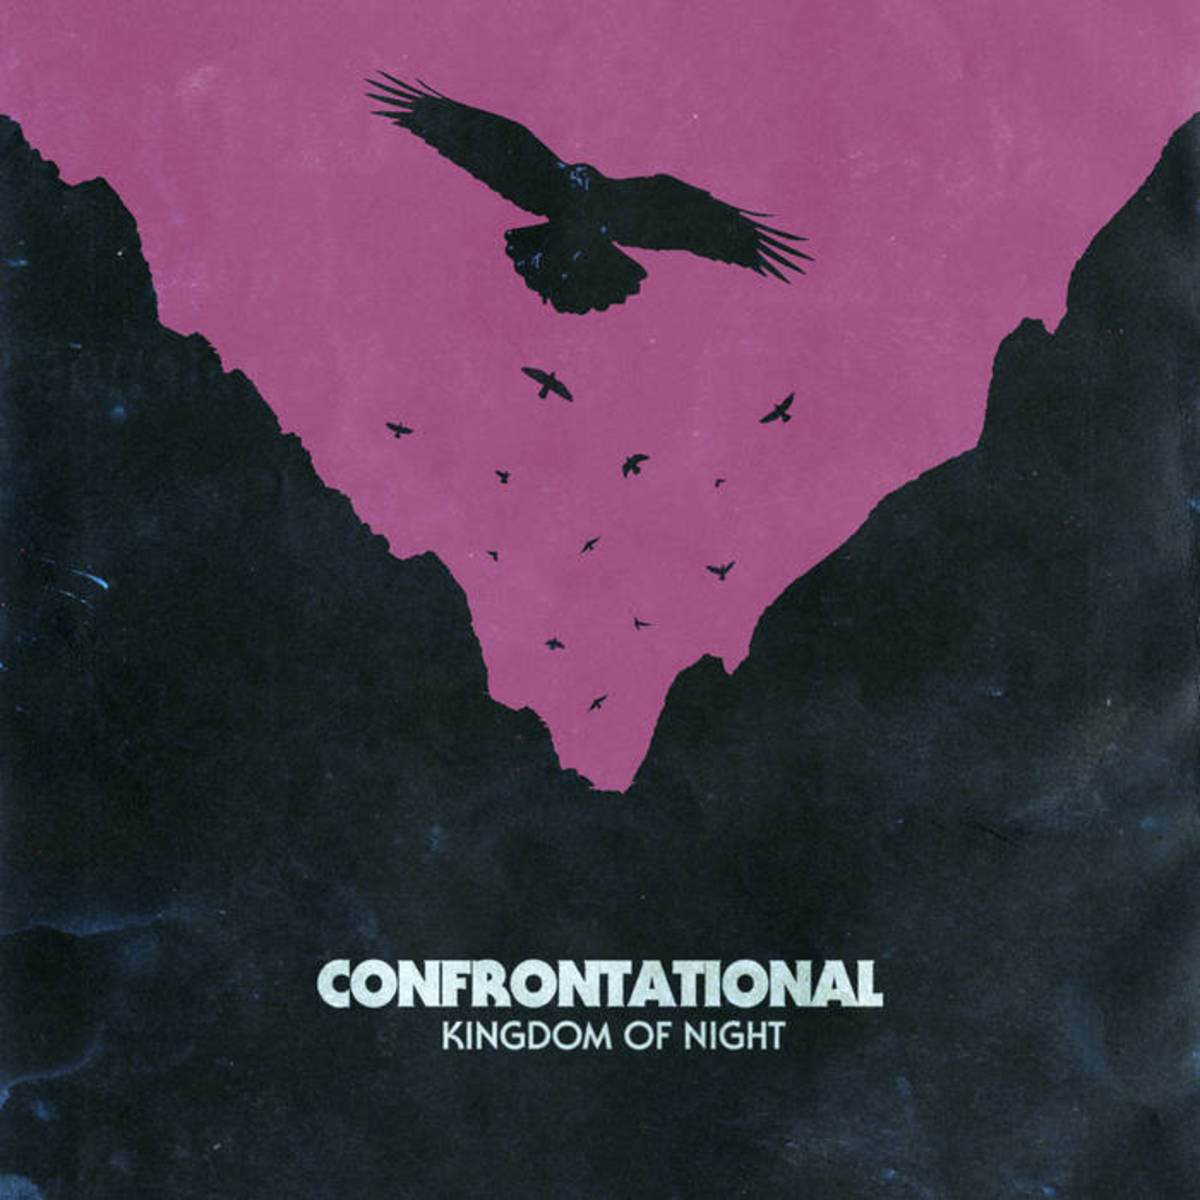 synth-album-review-kingdom-of-night-by-confrontational